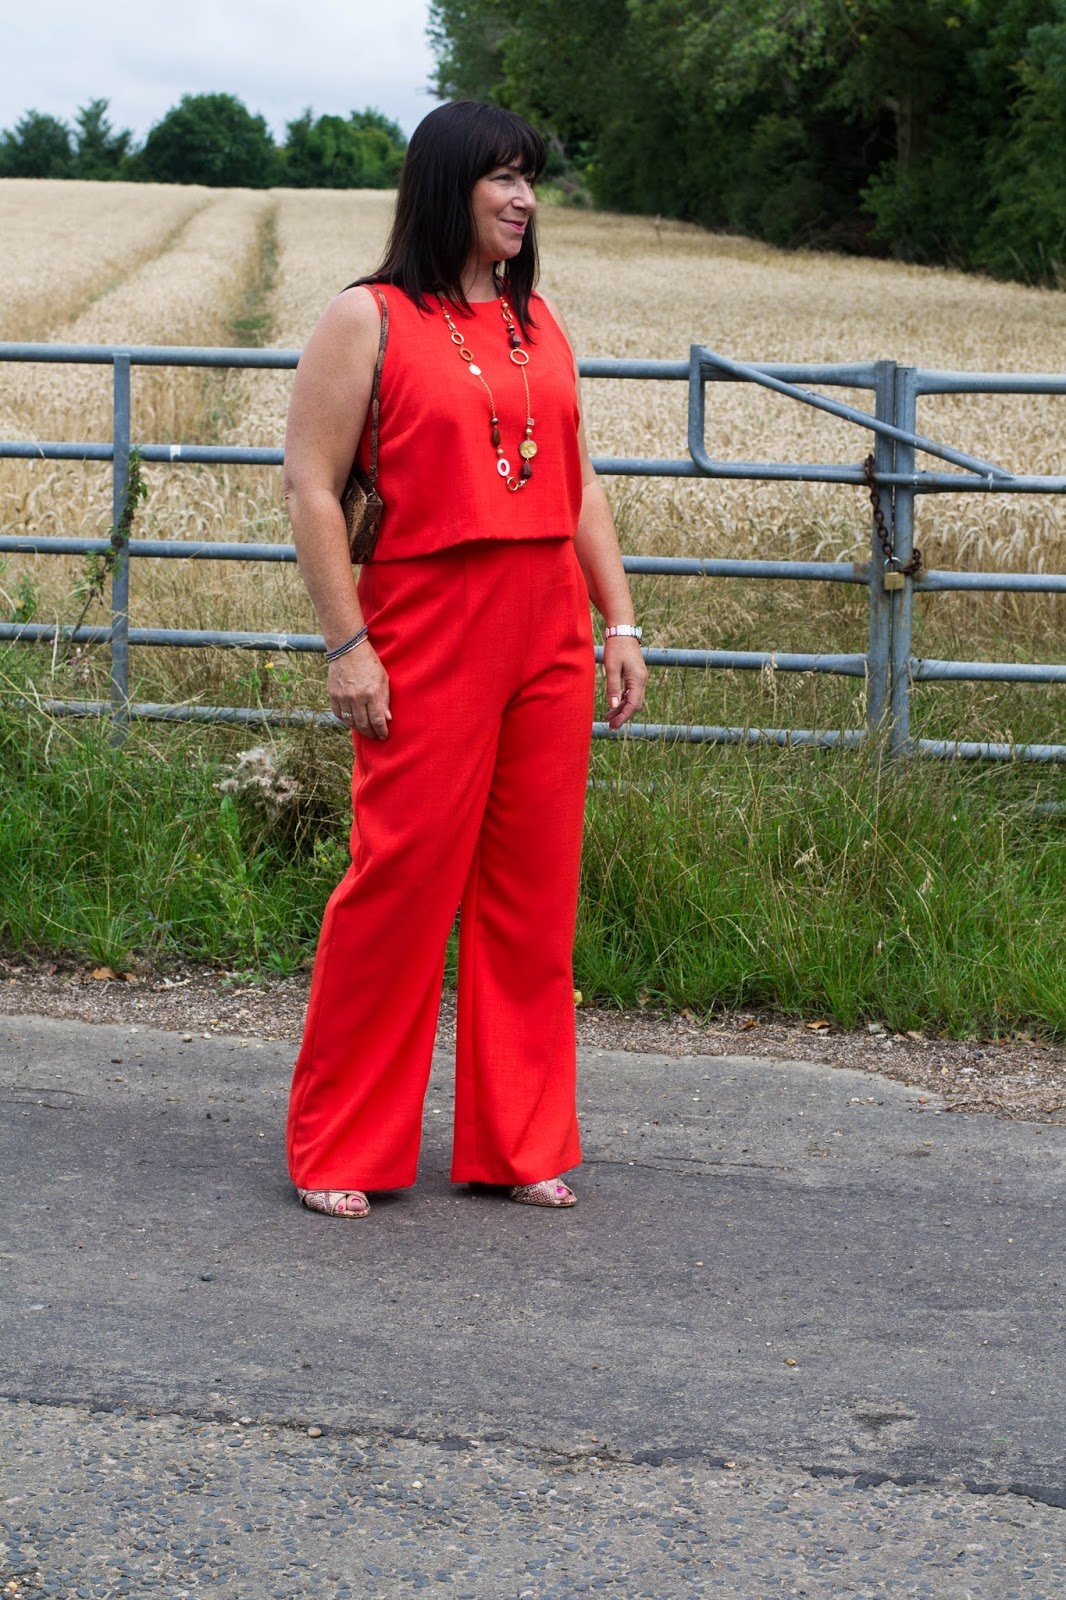 Jacqui Berry from Mummabstylish in orange flared trousers and cropped top